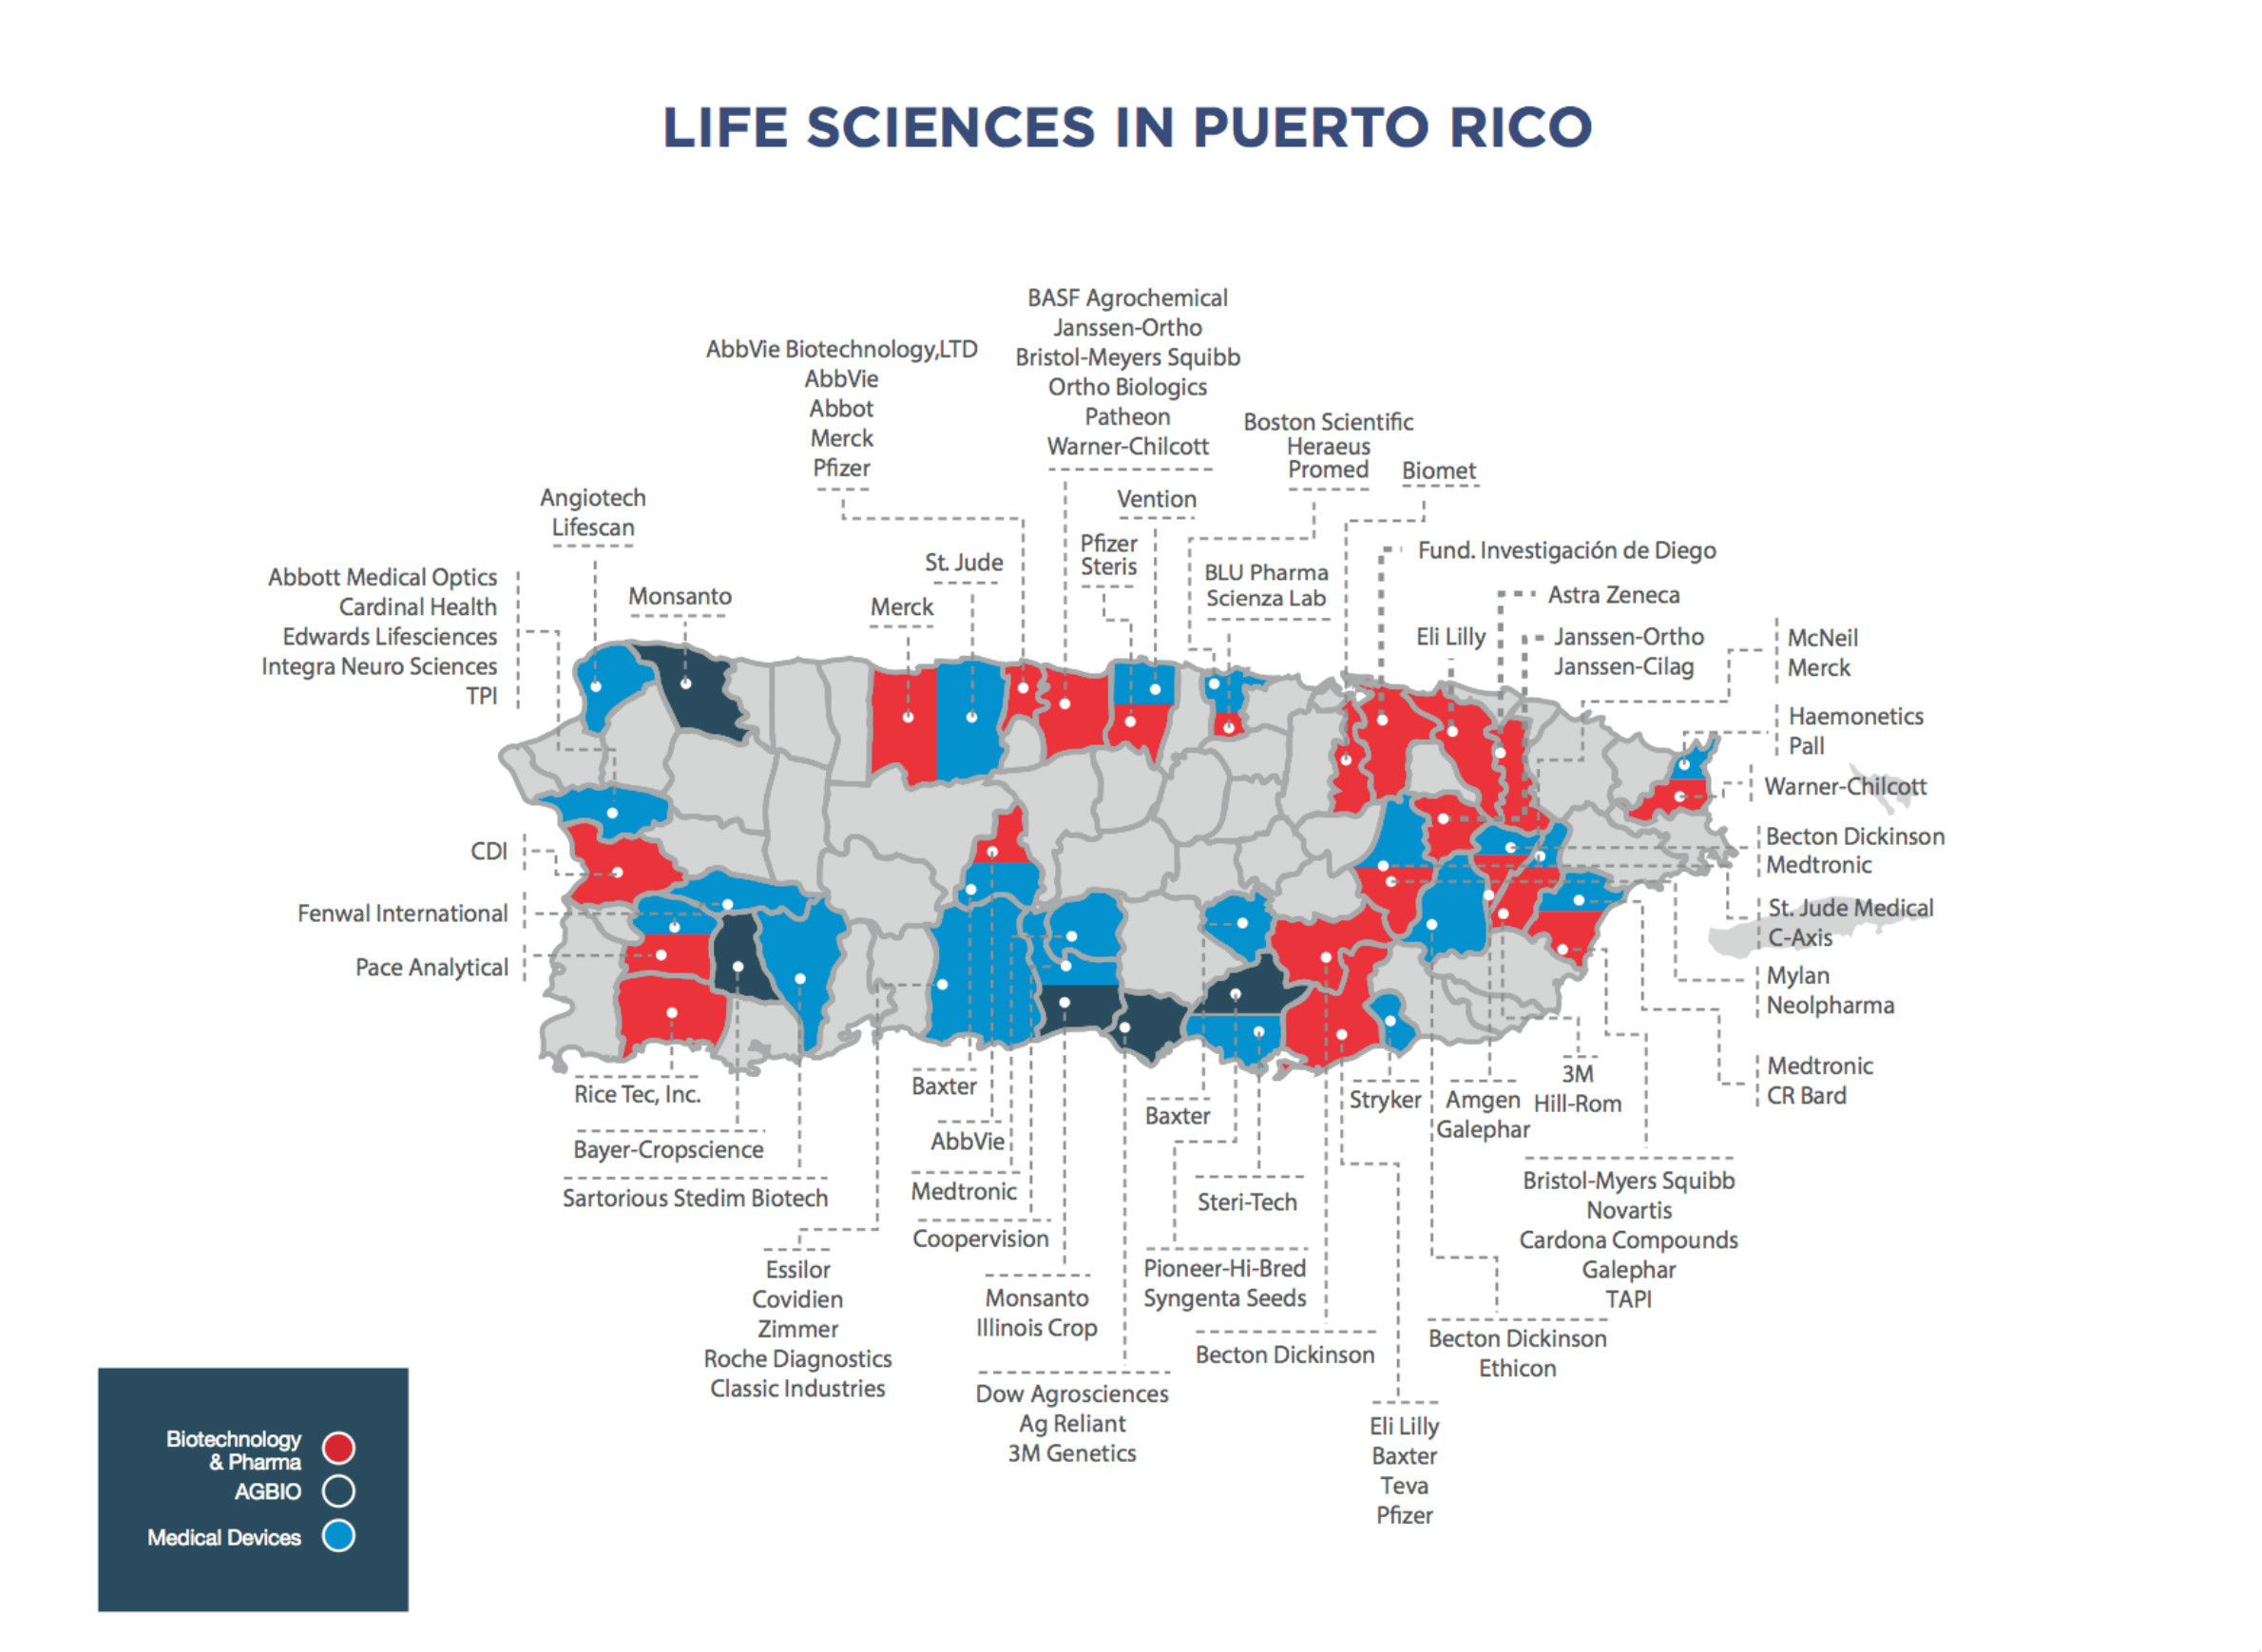 health-medicalsupply-supplychain-puertorico-lifesciences-businesses-map.jpg